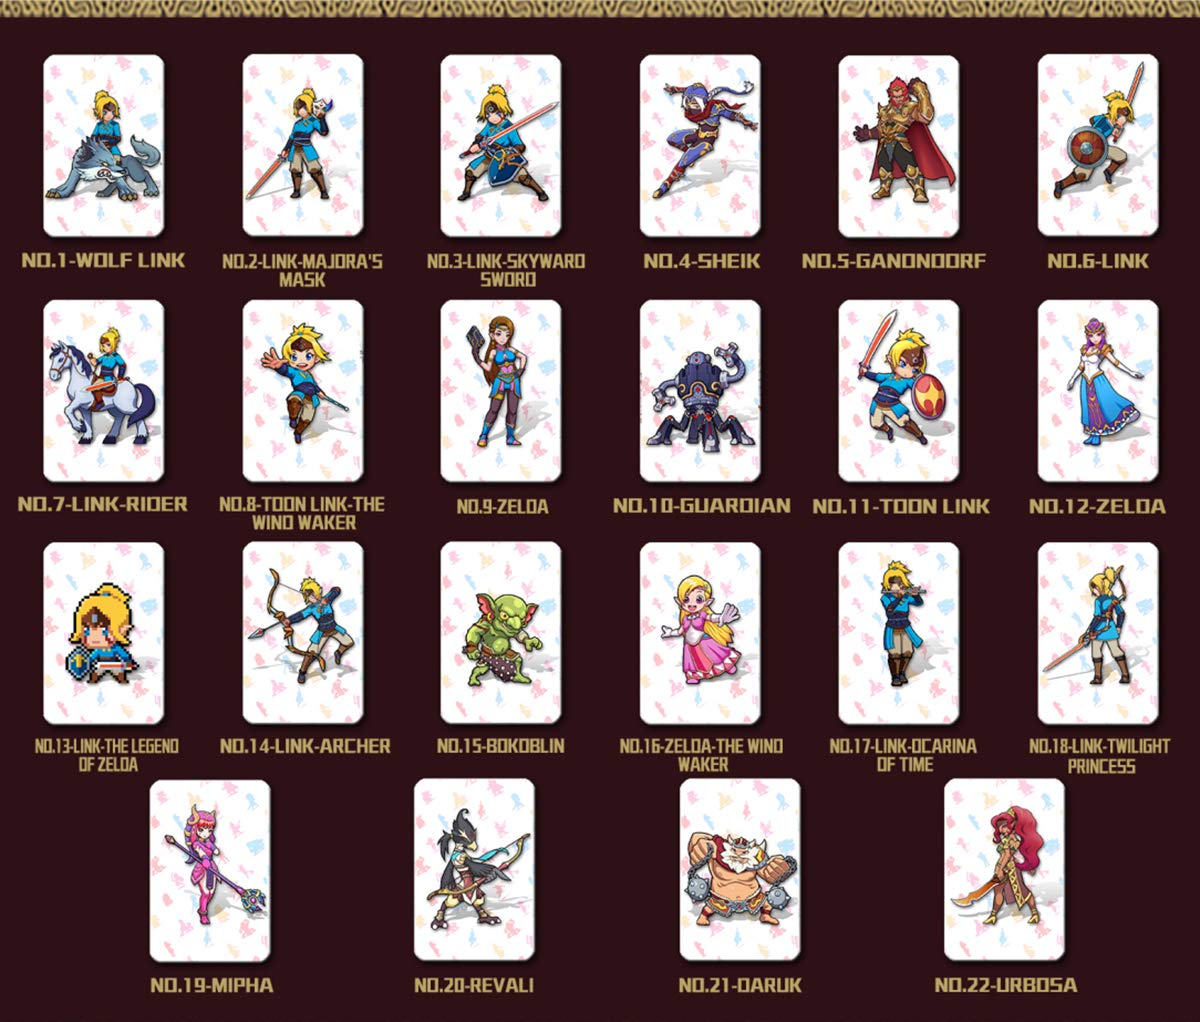 image regarding Printable Amiibo Cards titled NFC Tag Match Playing cards for the Legend of Zelda Breath of the Wild Exchange / Wii U- 22desktops Playing cards with Holder